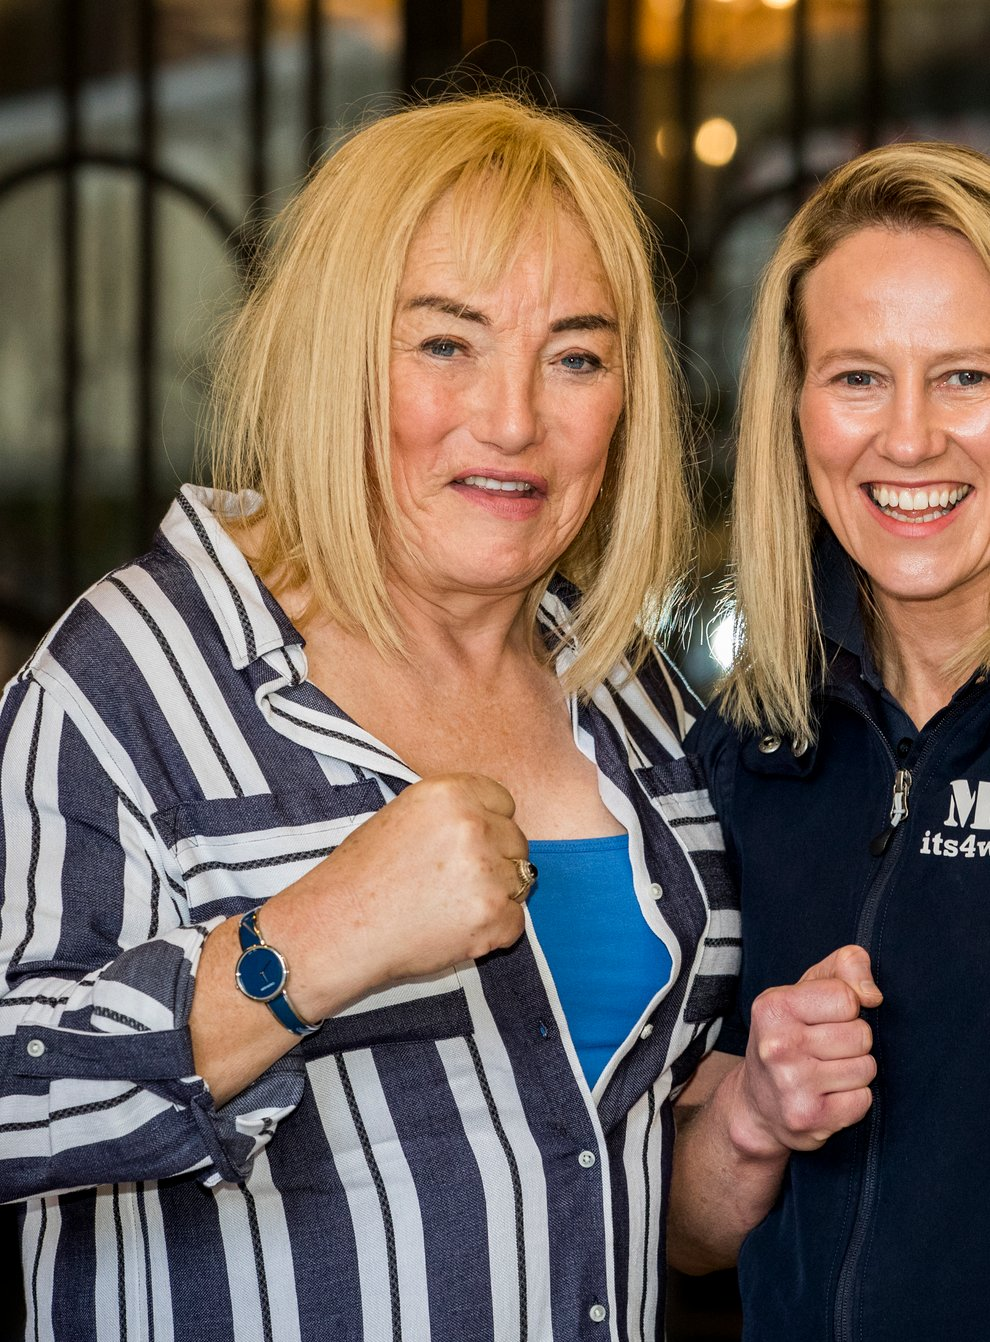 Kellie Maloney alongside her new fighter Cathy McAleer, as they look to make history (PA Images)